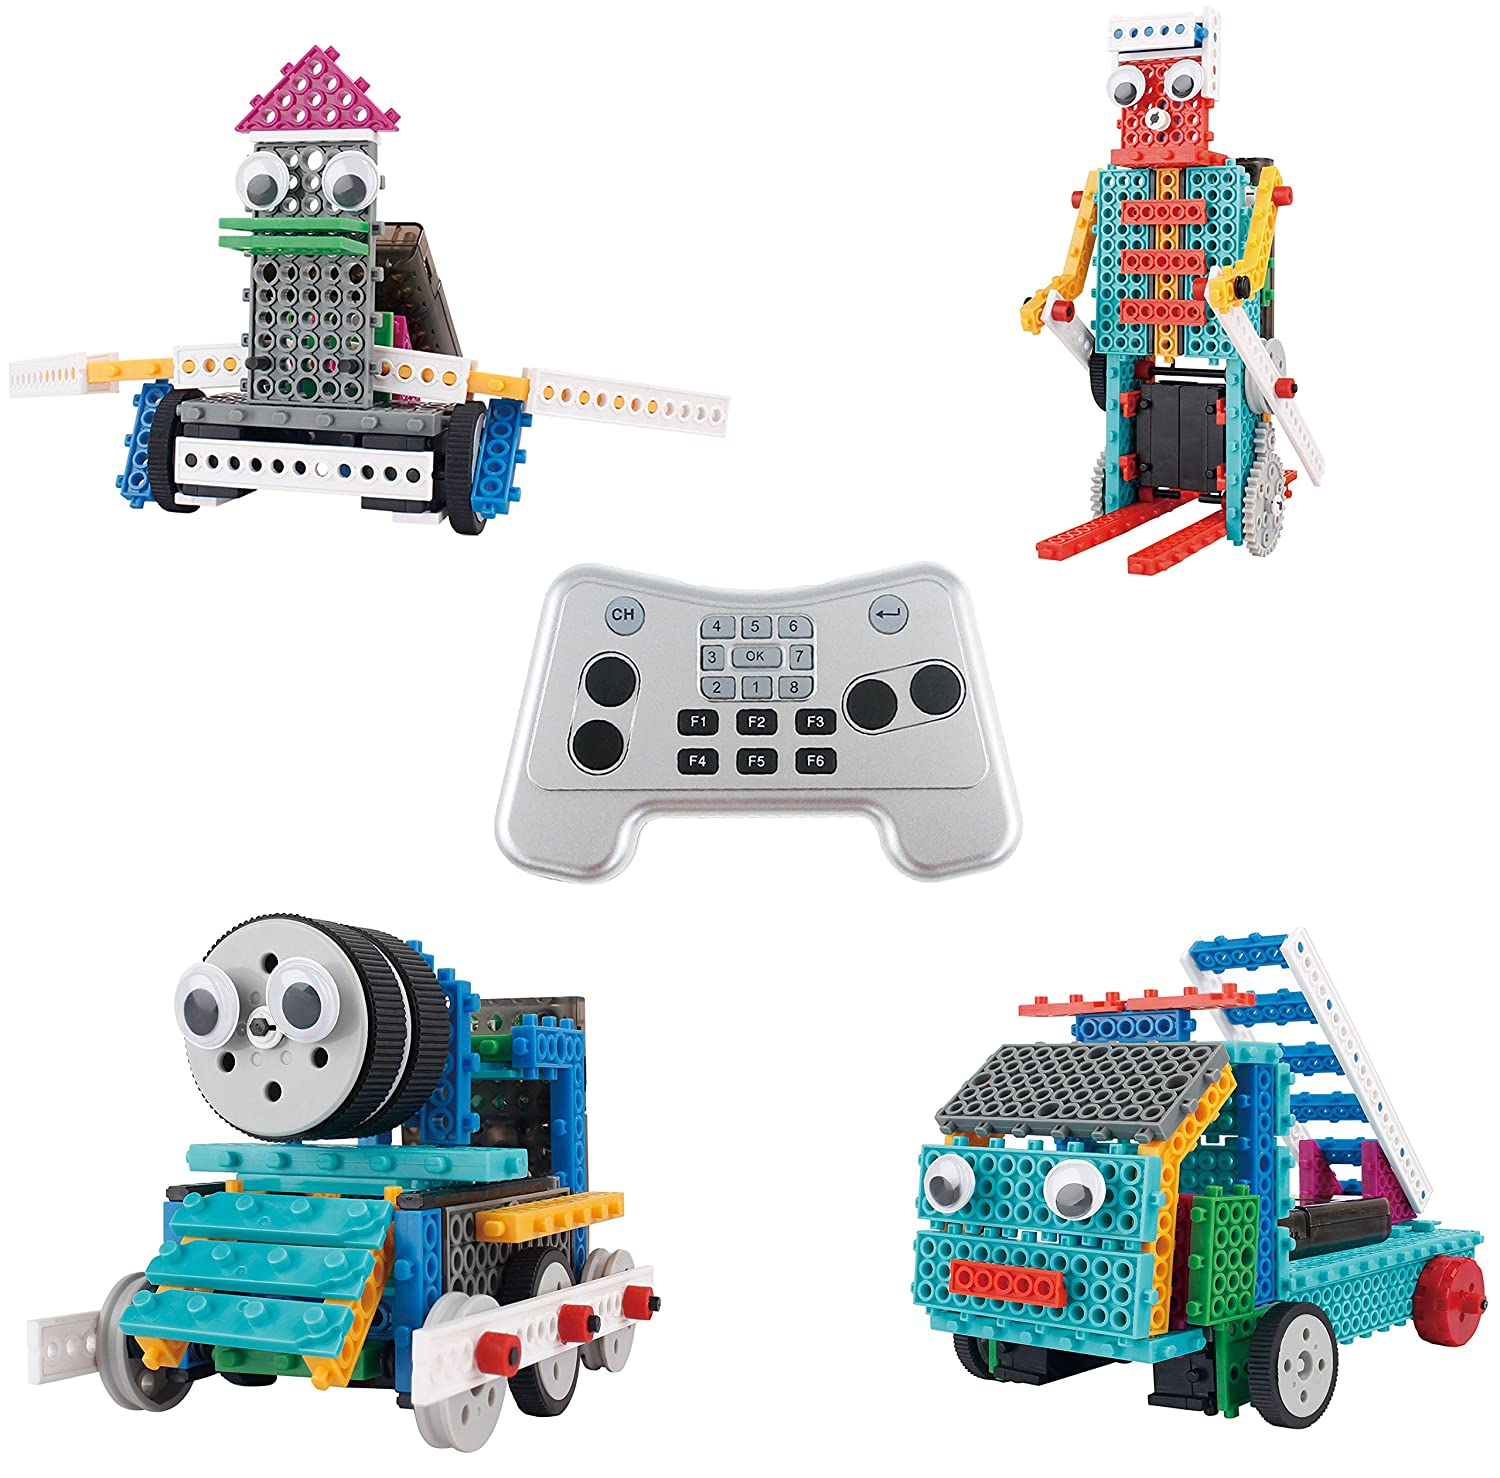 Build Your Own Robot Toys For Kids Ingenious Machines Remote